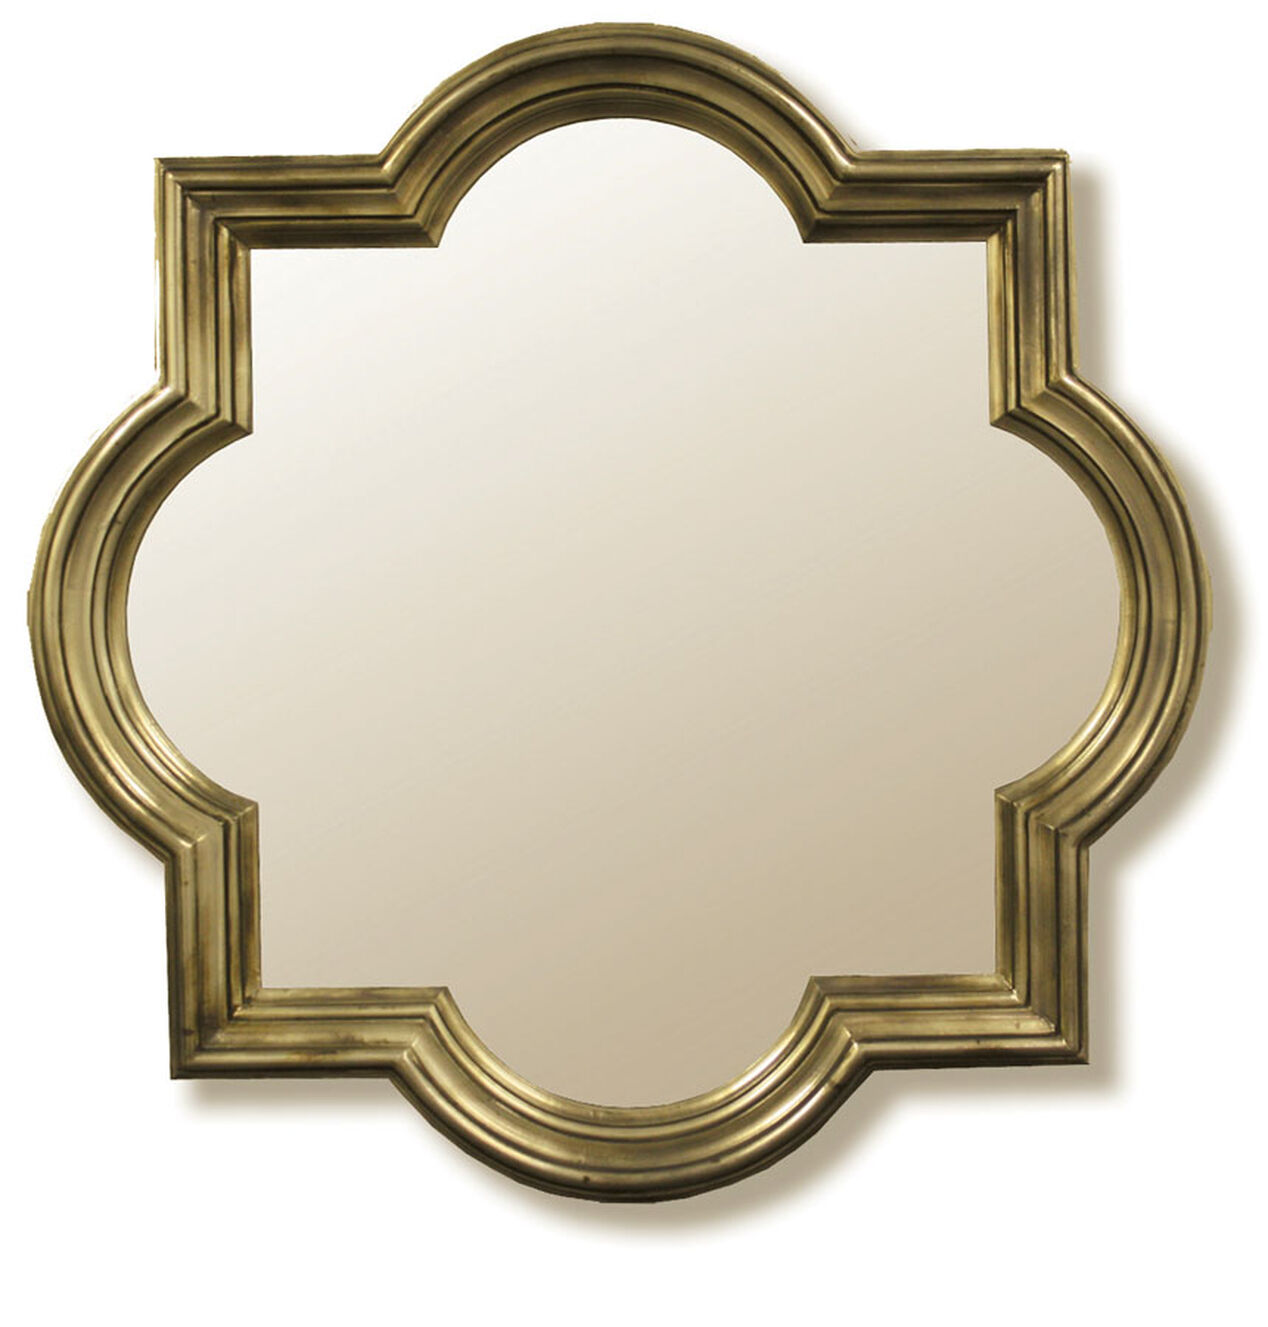 champagne quartrefoil mirror 40 x 40 at home. Black Bedroom Furniture Sets. Home Design Ideas